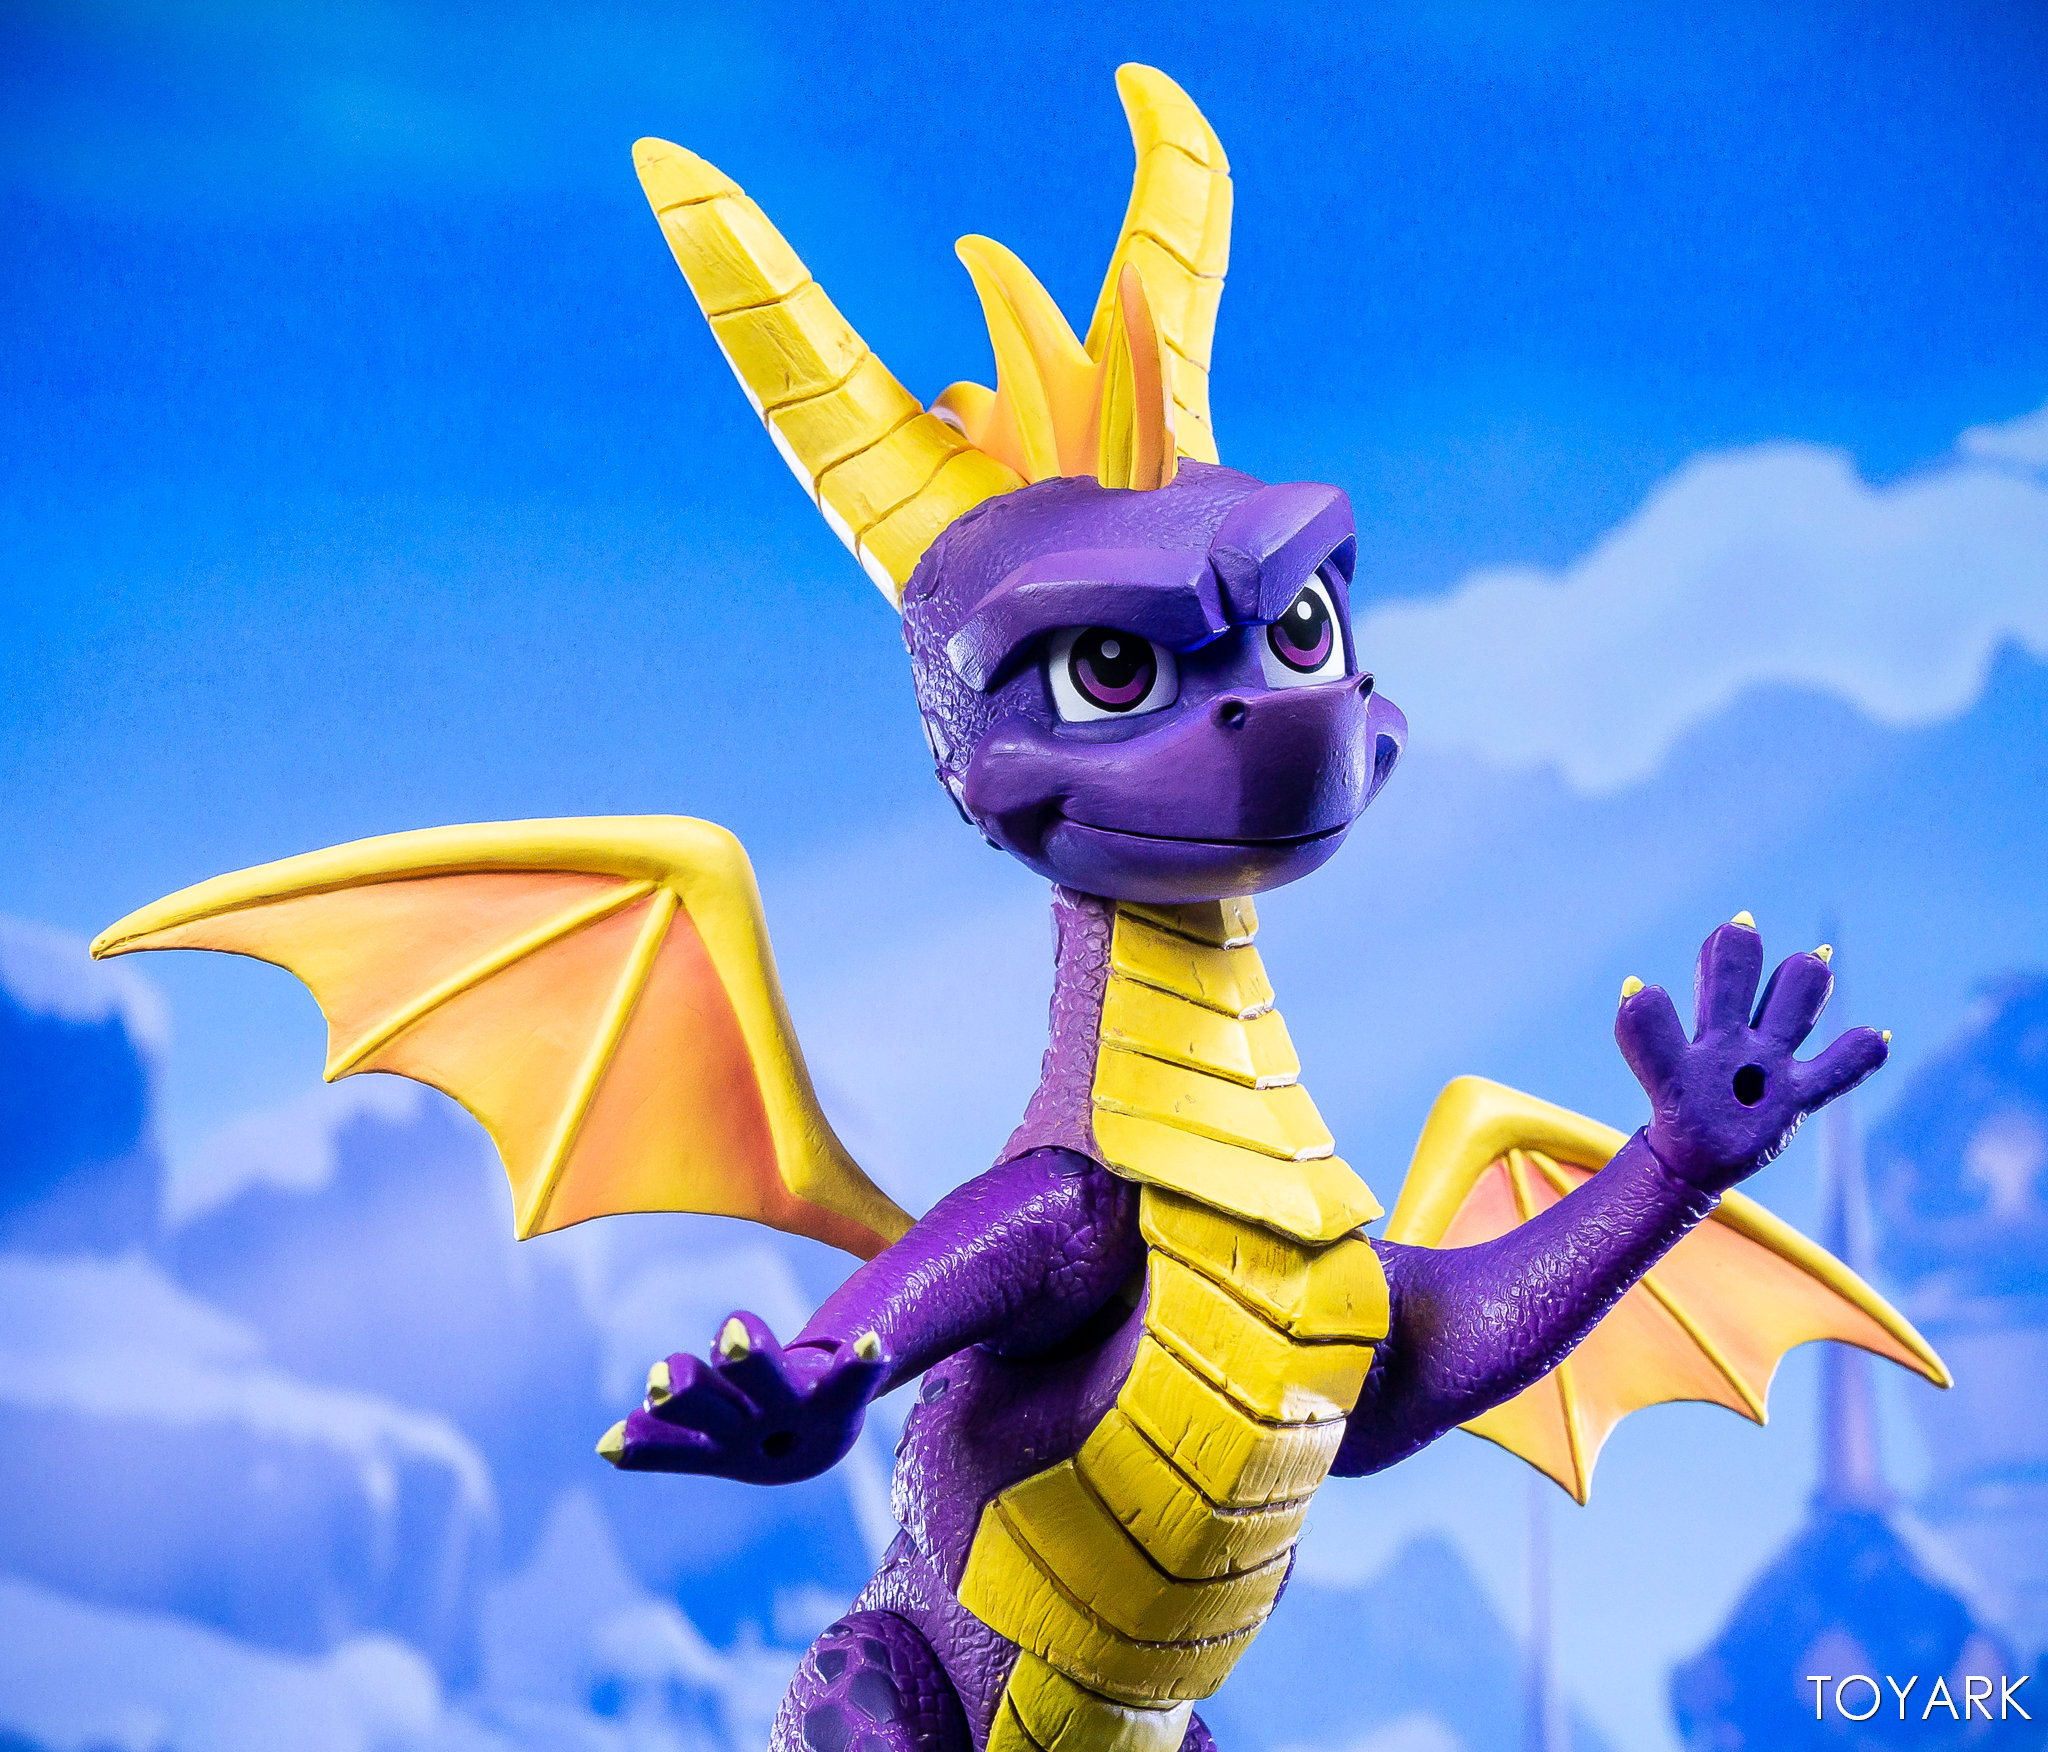 https://news.toyark.com/wp-content/uploads/sites/4/2019/03/NECA-Spyro-The-Dragon-Figure-026.jpg